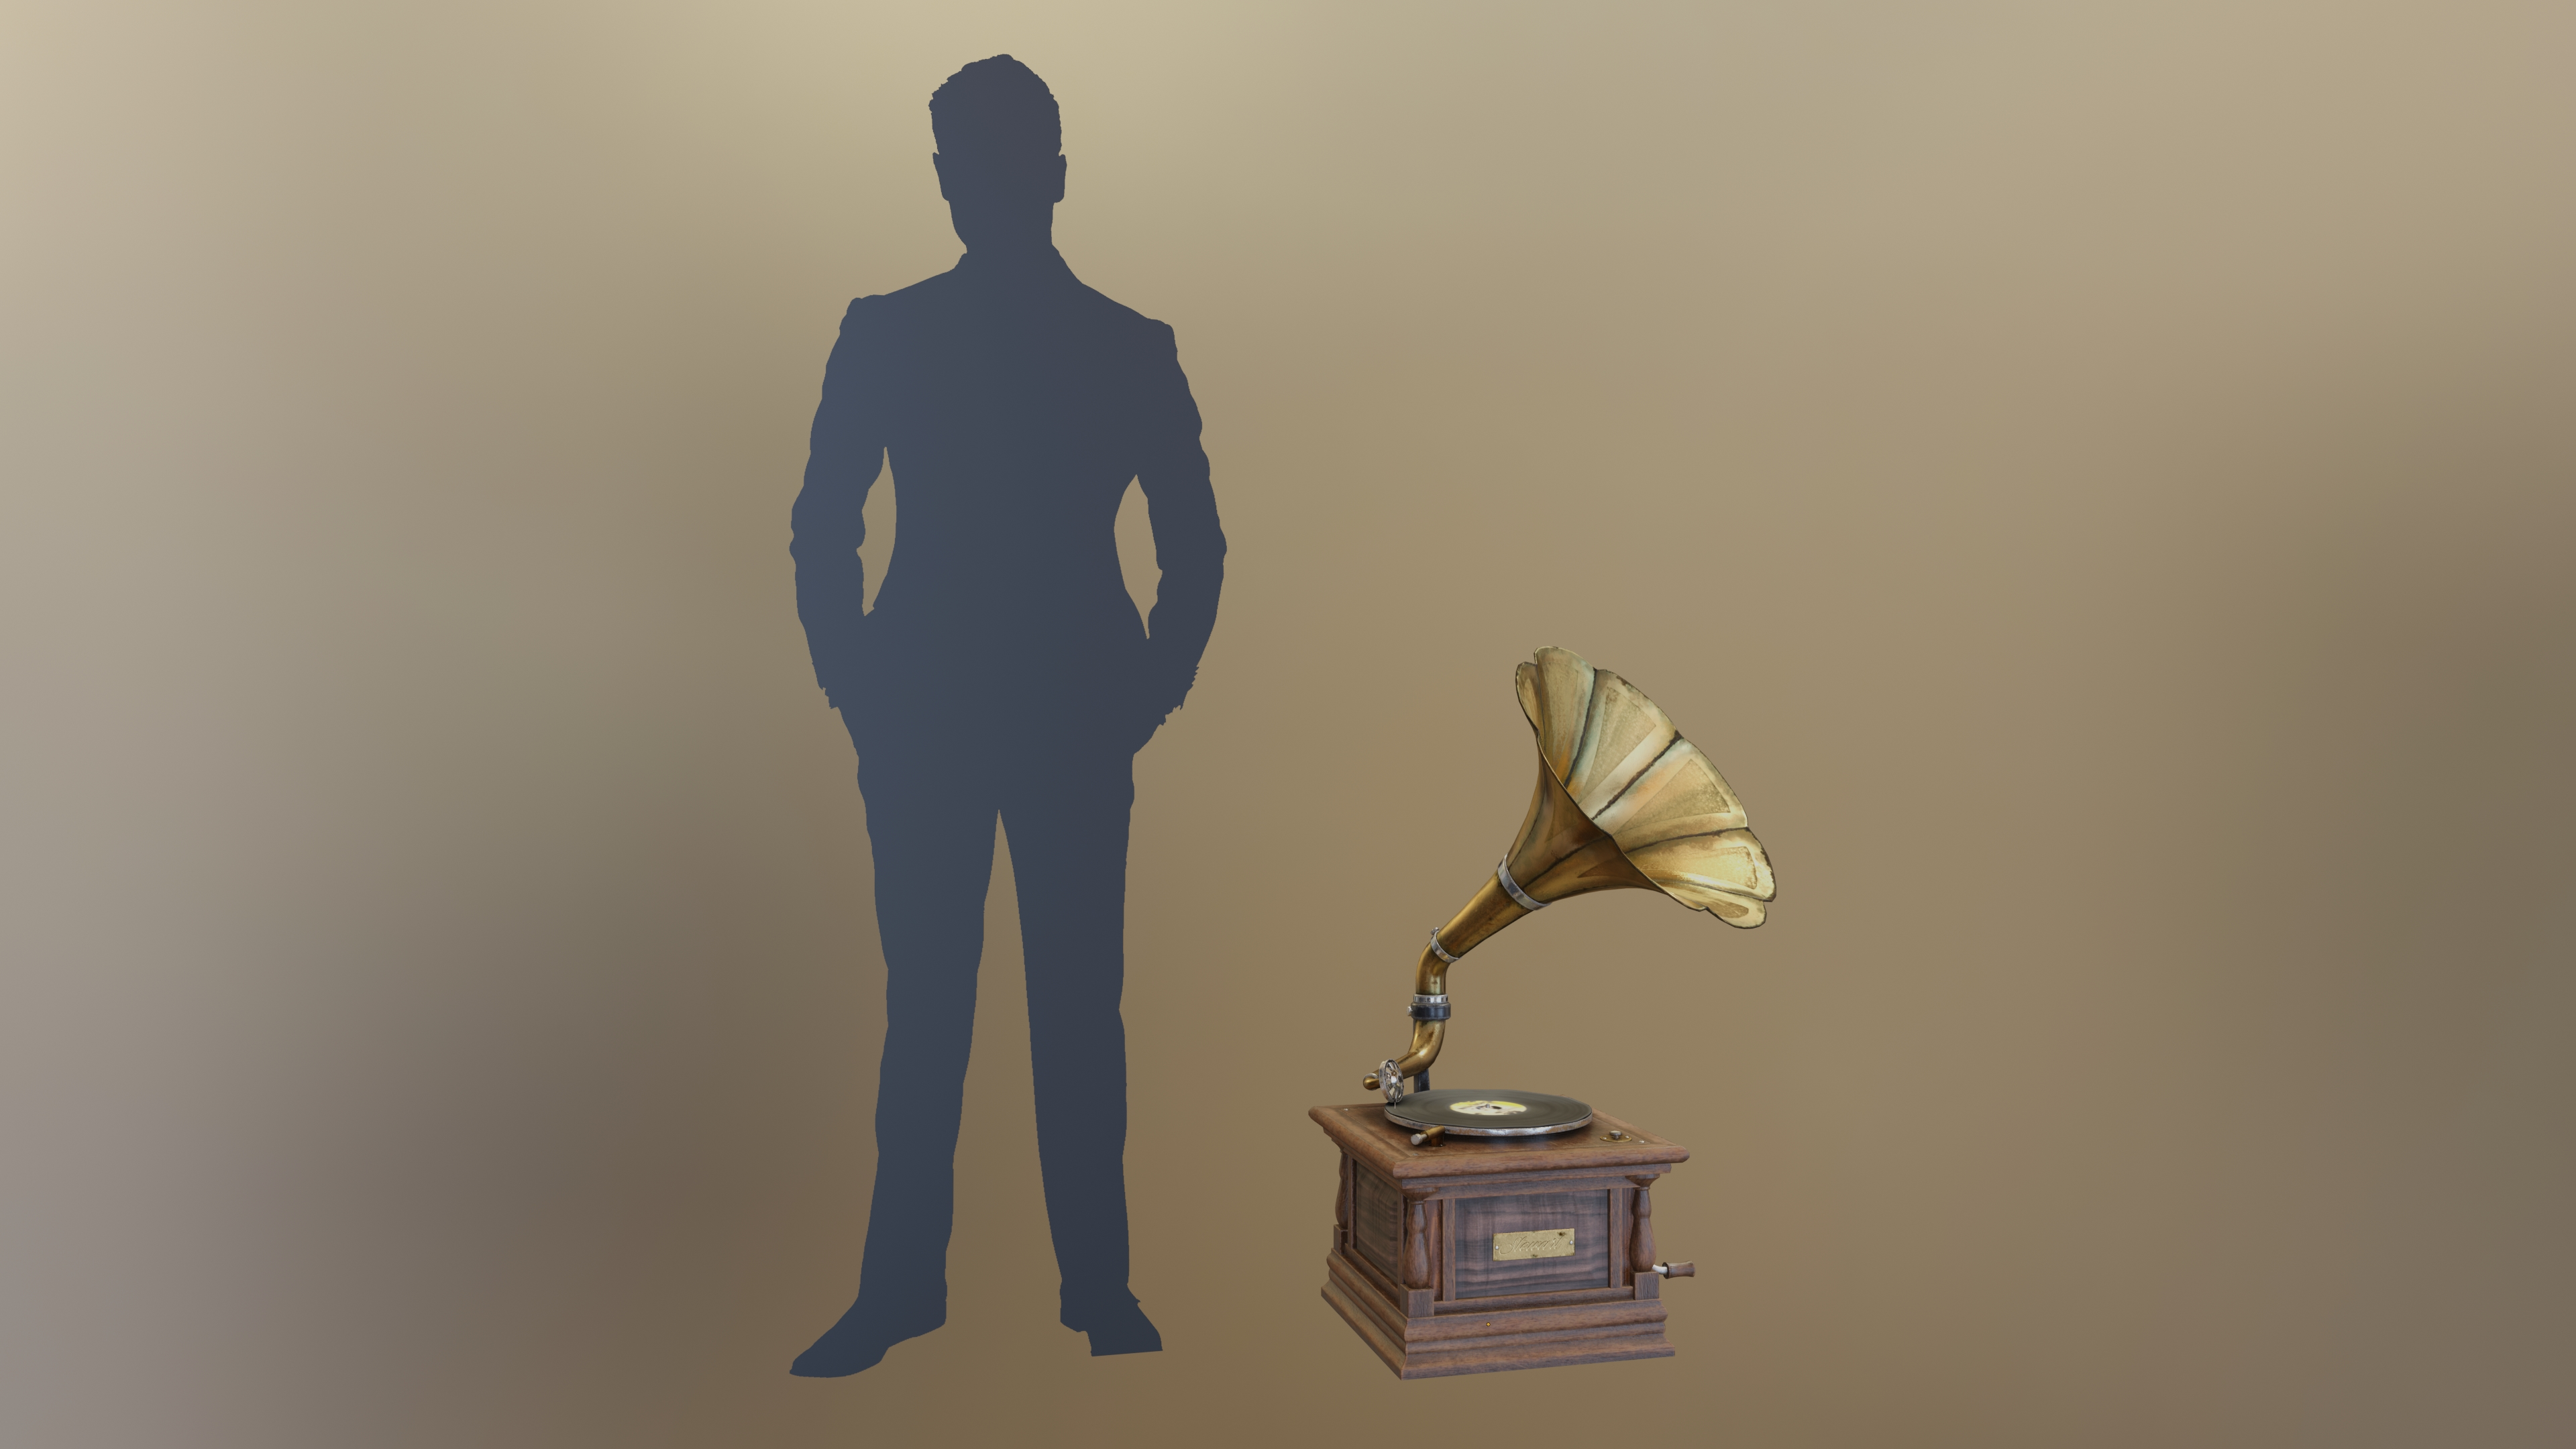 Stewarts Antique Record Player preview image 7